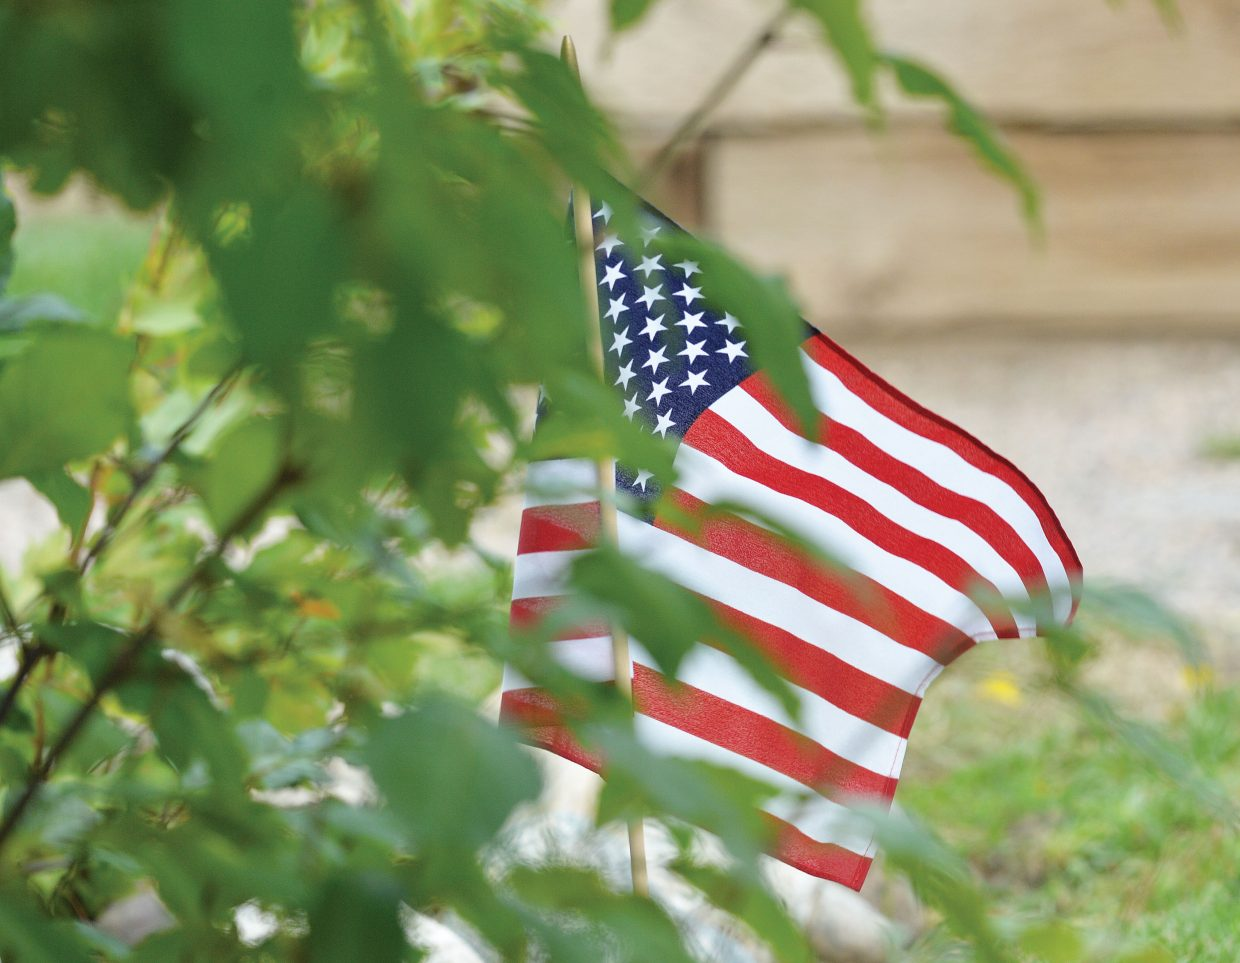 An American flag blows in the breeze Thursday evening, marking the 13th anniversary of the Sept. 11 attacks.